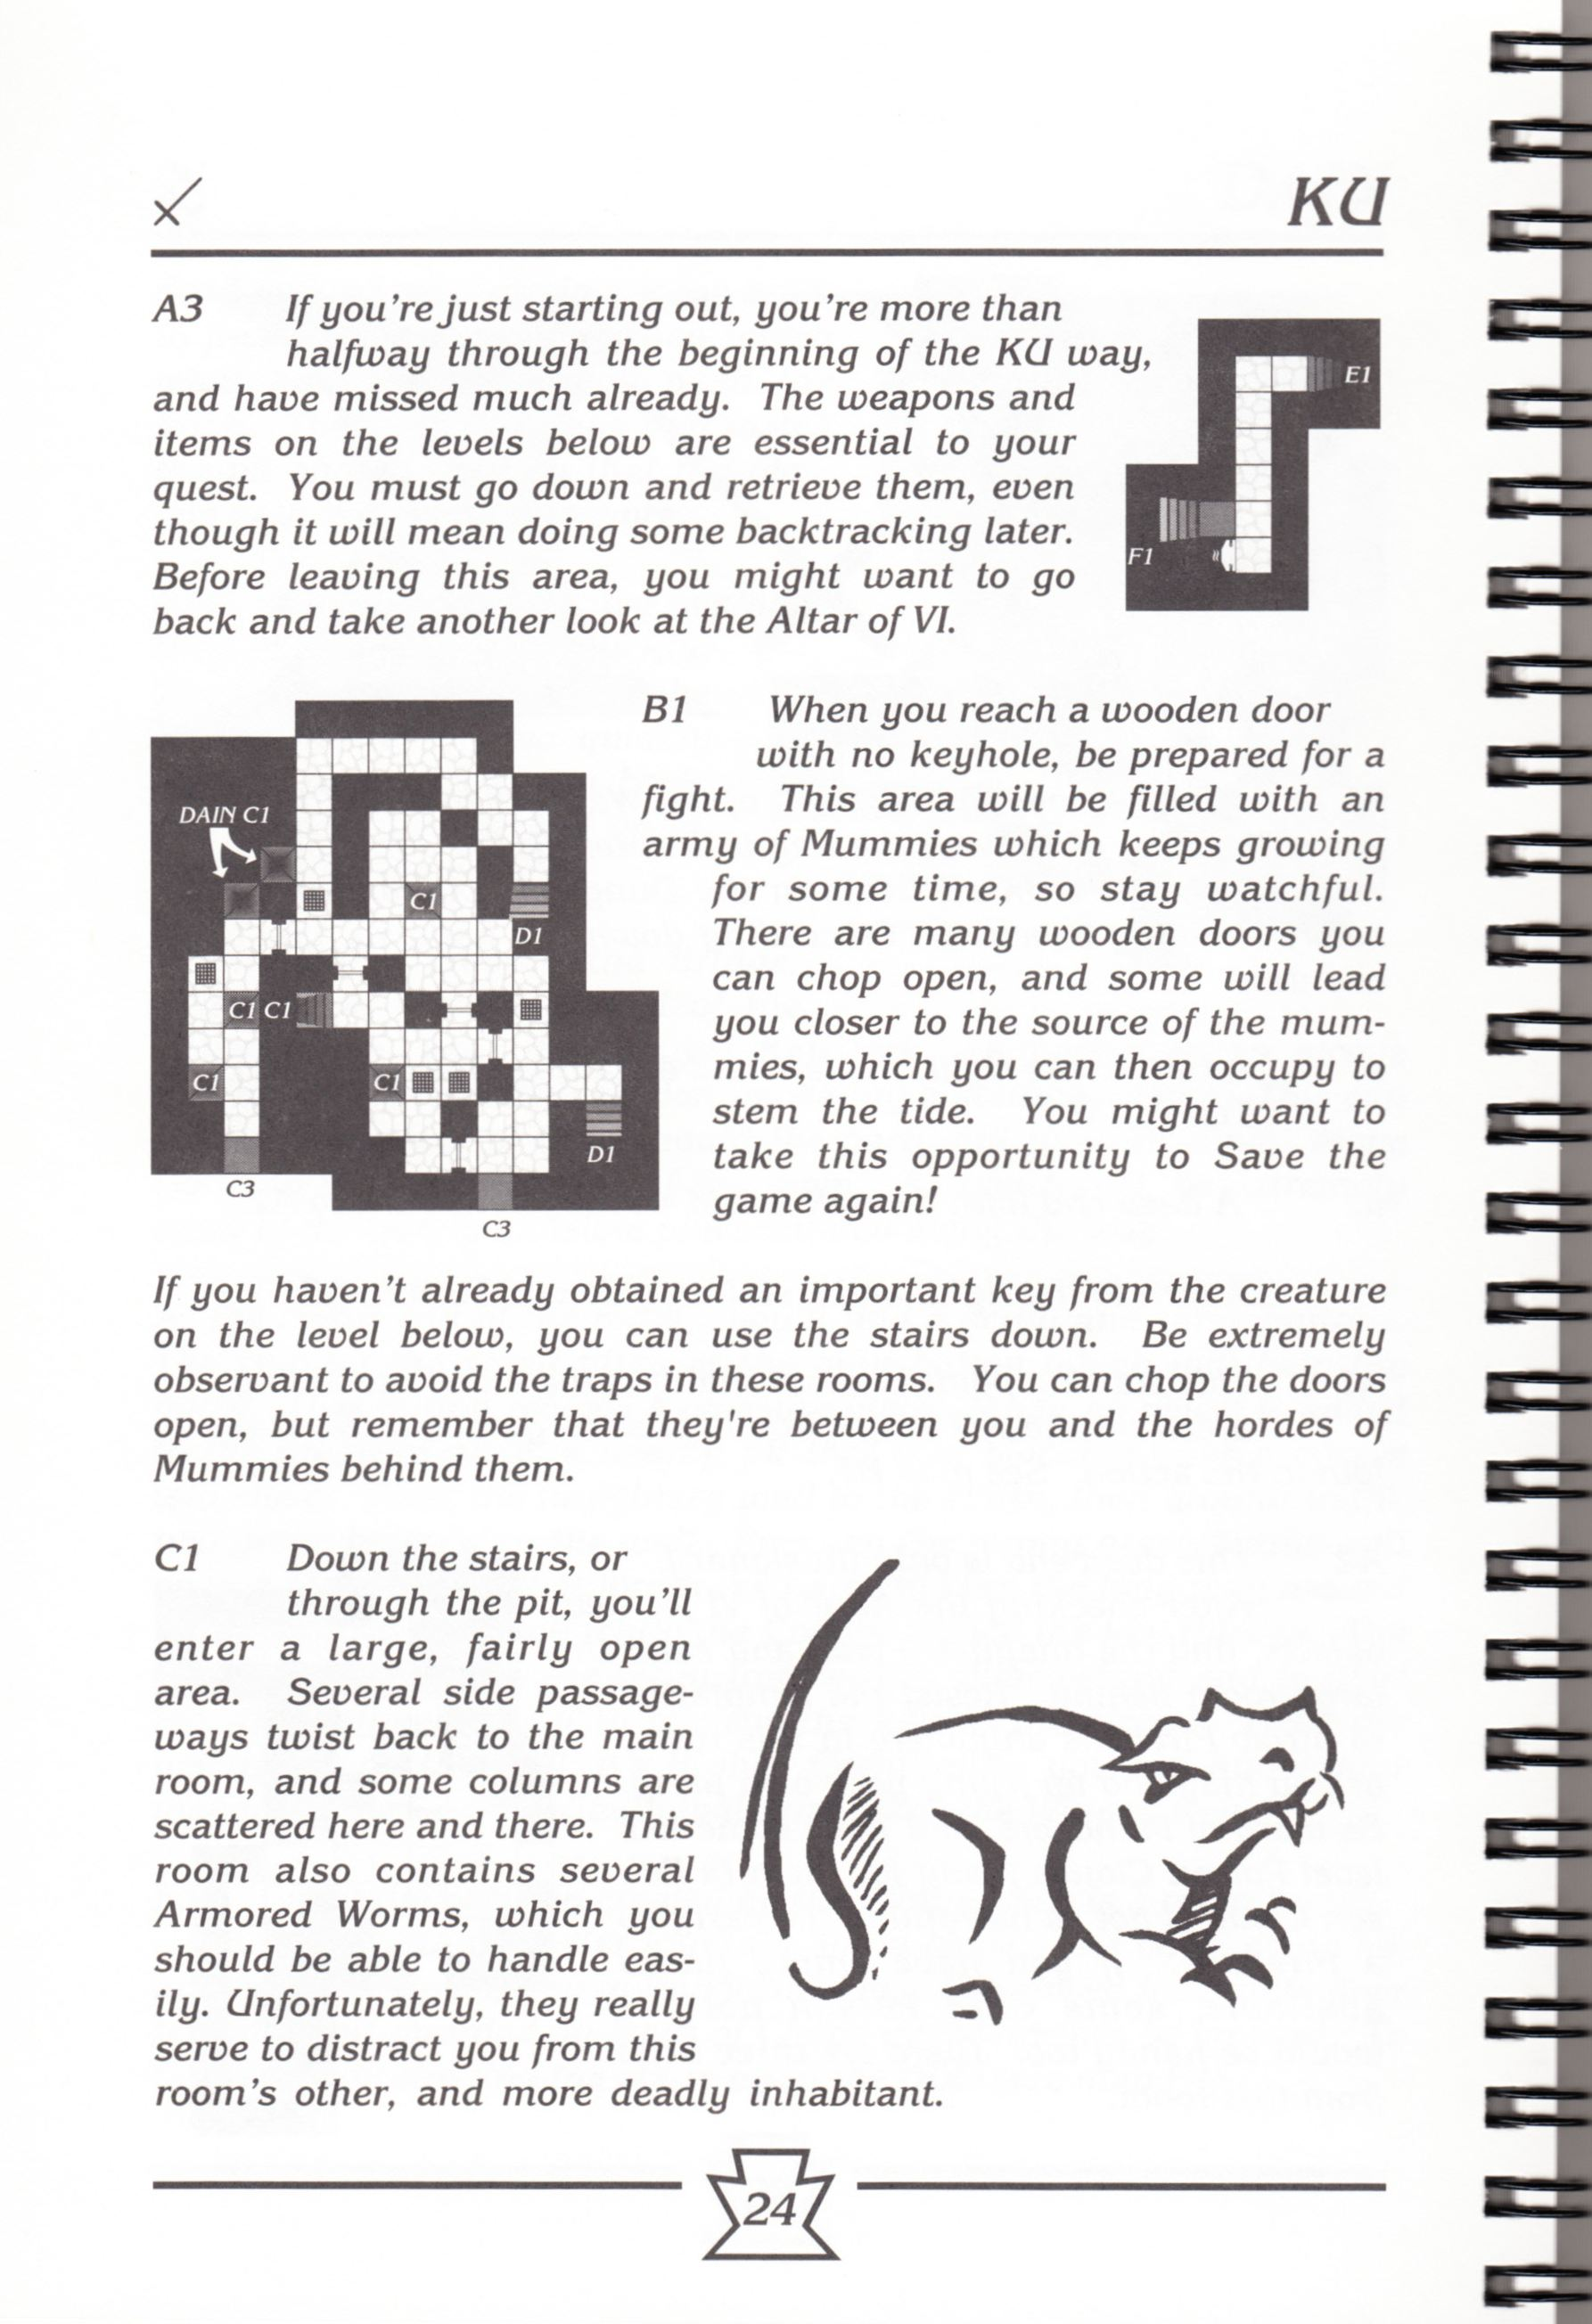 Hint Book - Chaos Strikes Back Adventurer's Handbook - US - Page 030 - Scan